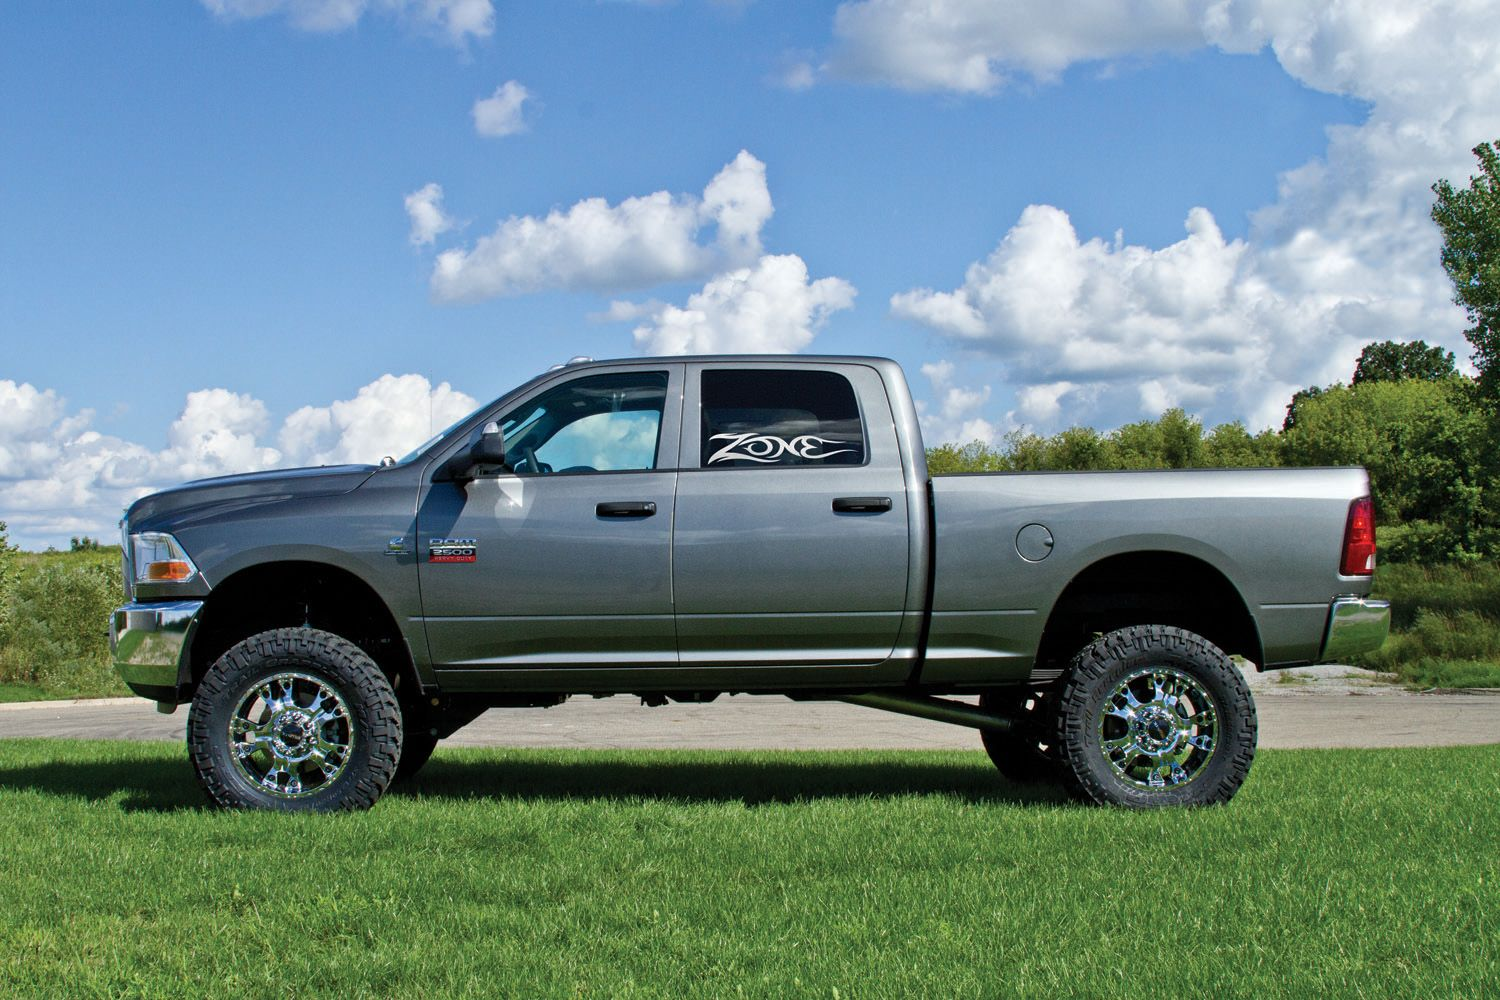 2014 dodge ram 1500 lifted red 2014 dodge ram lifted free car pictures pictures dodge ram. Black Bedroom Furniture Sets. Home Design Ideas